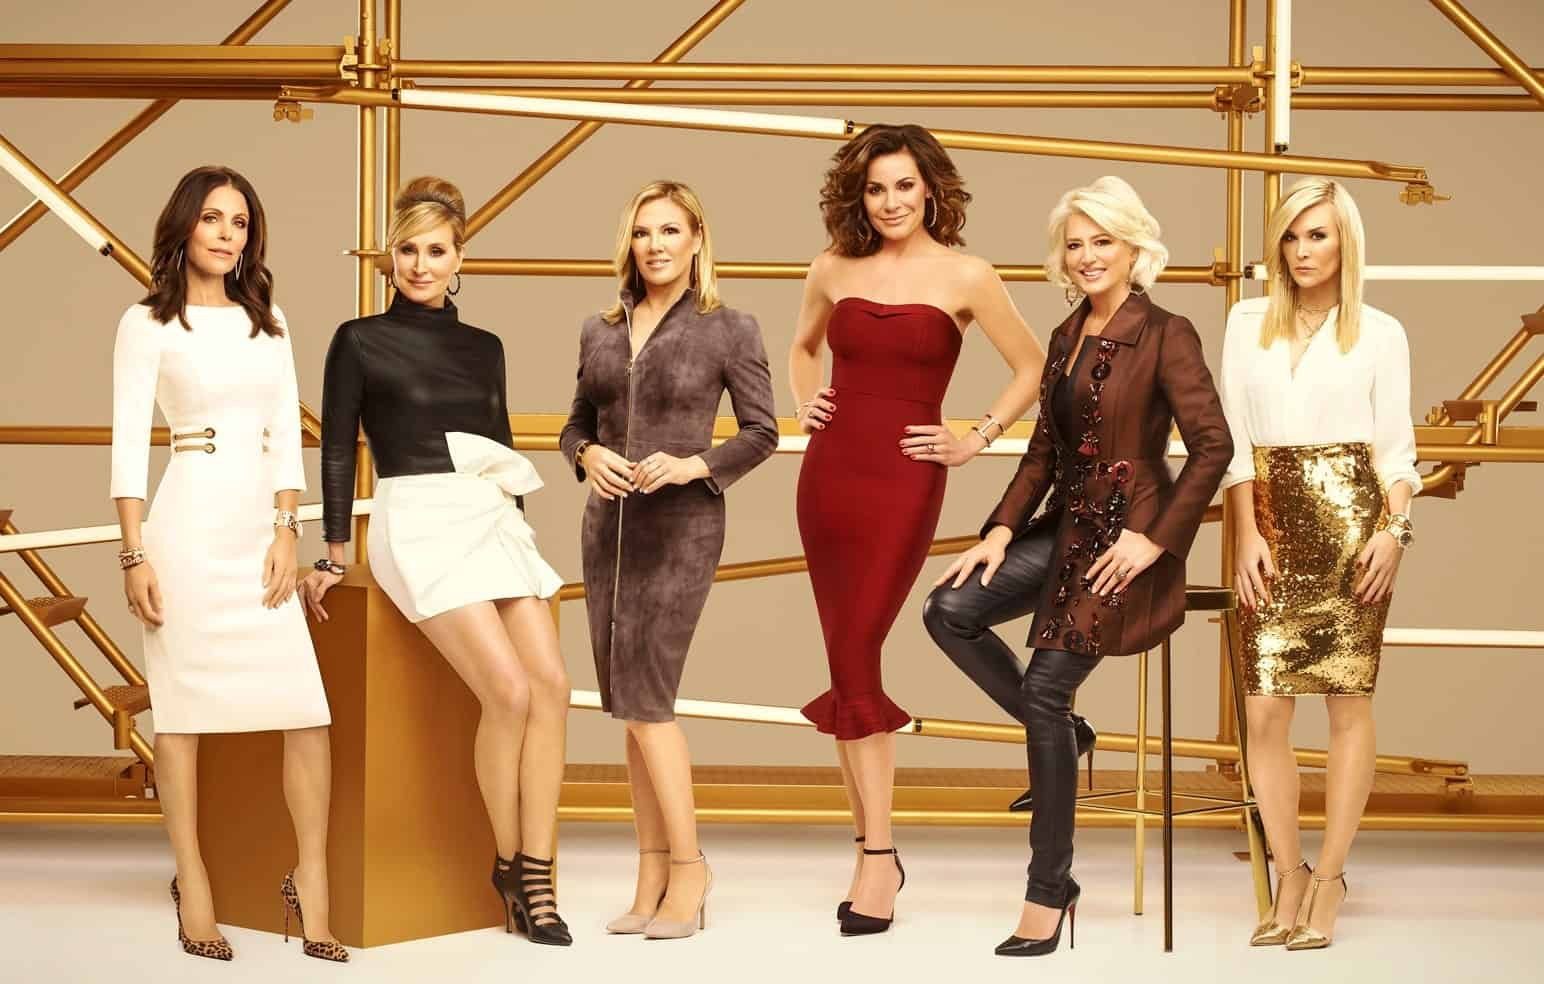 REPORT: Bravo TV Producers Could Add a Male Cast Member to RHONY for Season 12